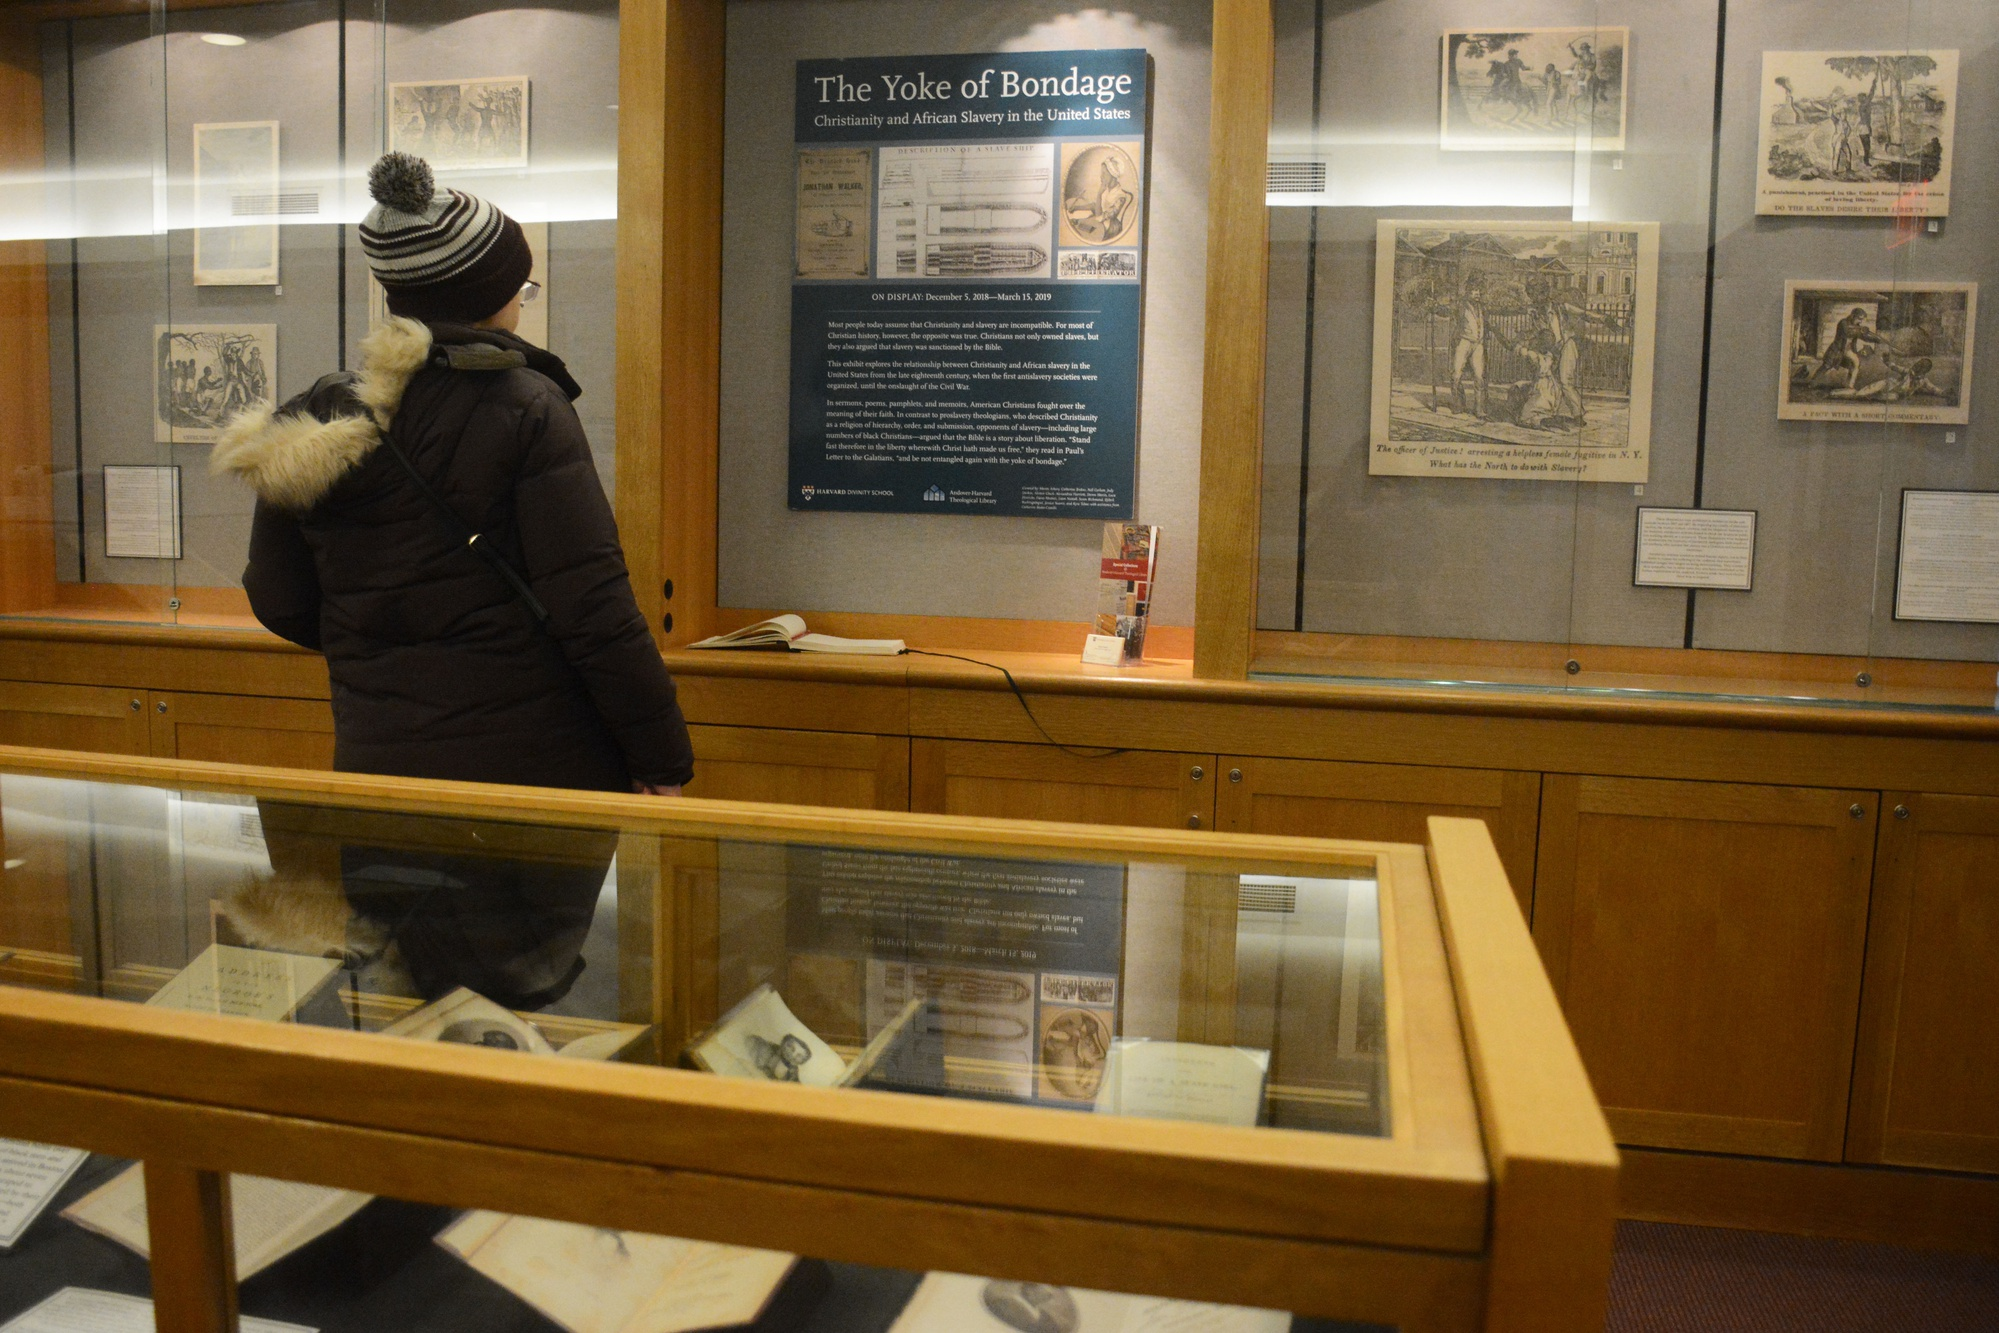 Curated by Professor Catherine Brekus's Freshman Seminar 43D: Christianity and Slavery in America, the Yoke of Bondage exhibit opened at the Andover-Harvard Theological Library December 5th.